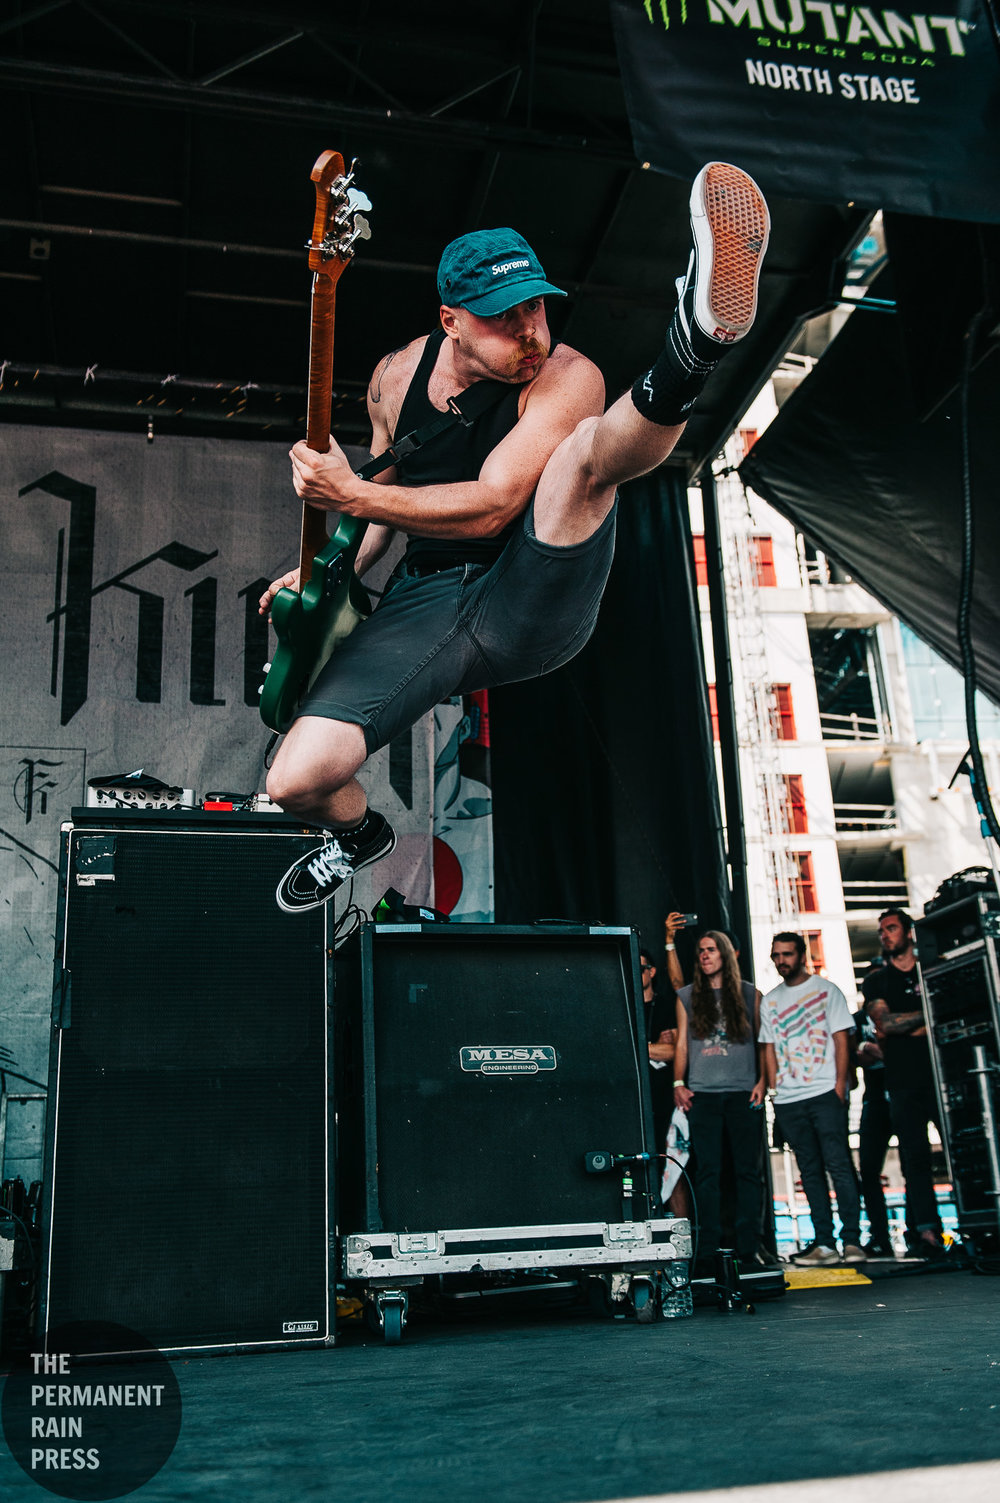 14_Fit_For_A_King-Vans_Warped_Tour-20170616 (11 of 15).jpg